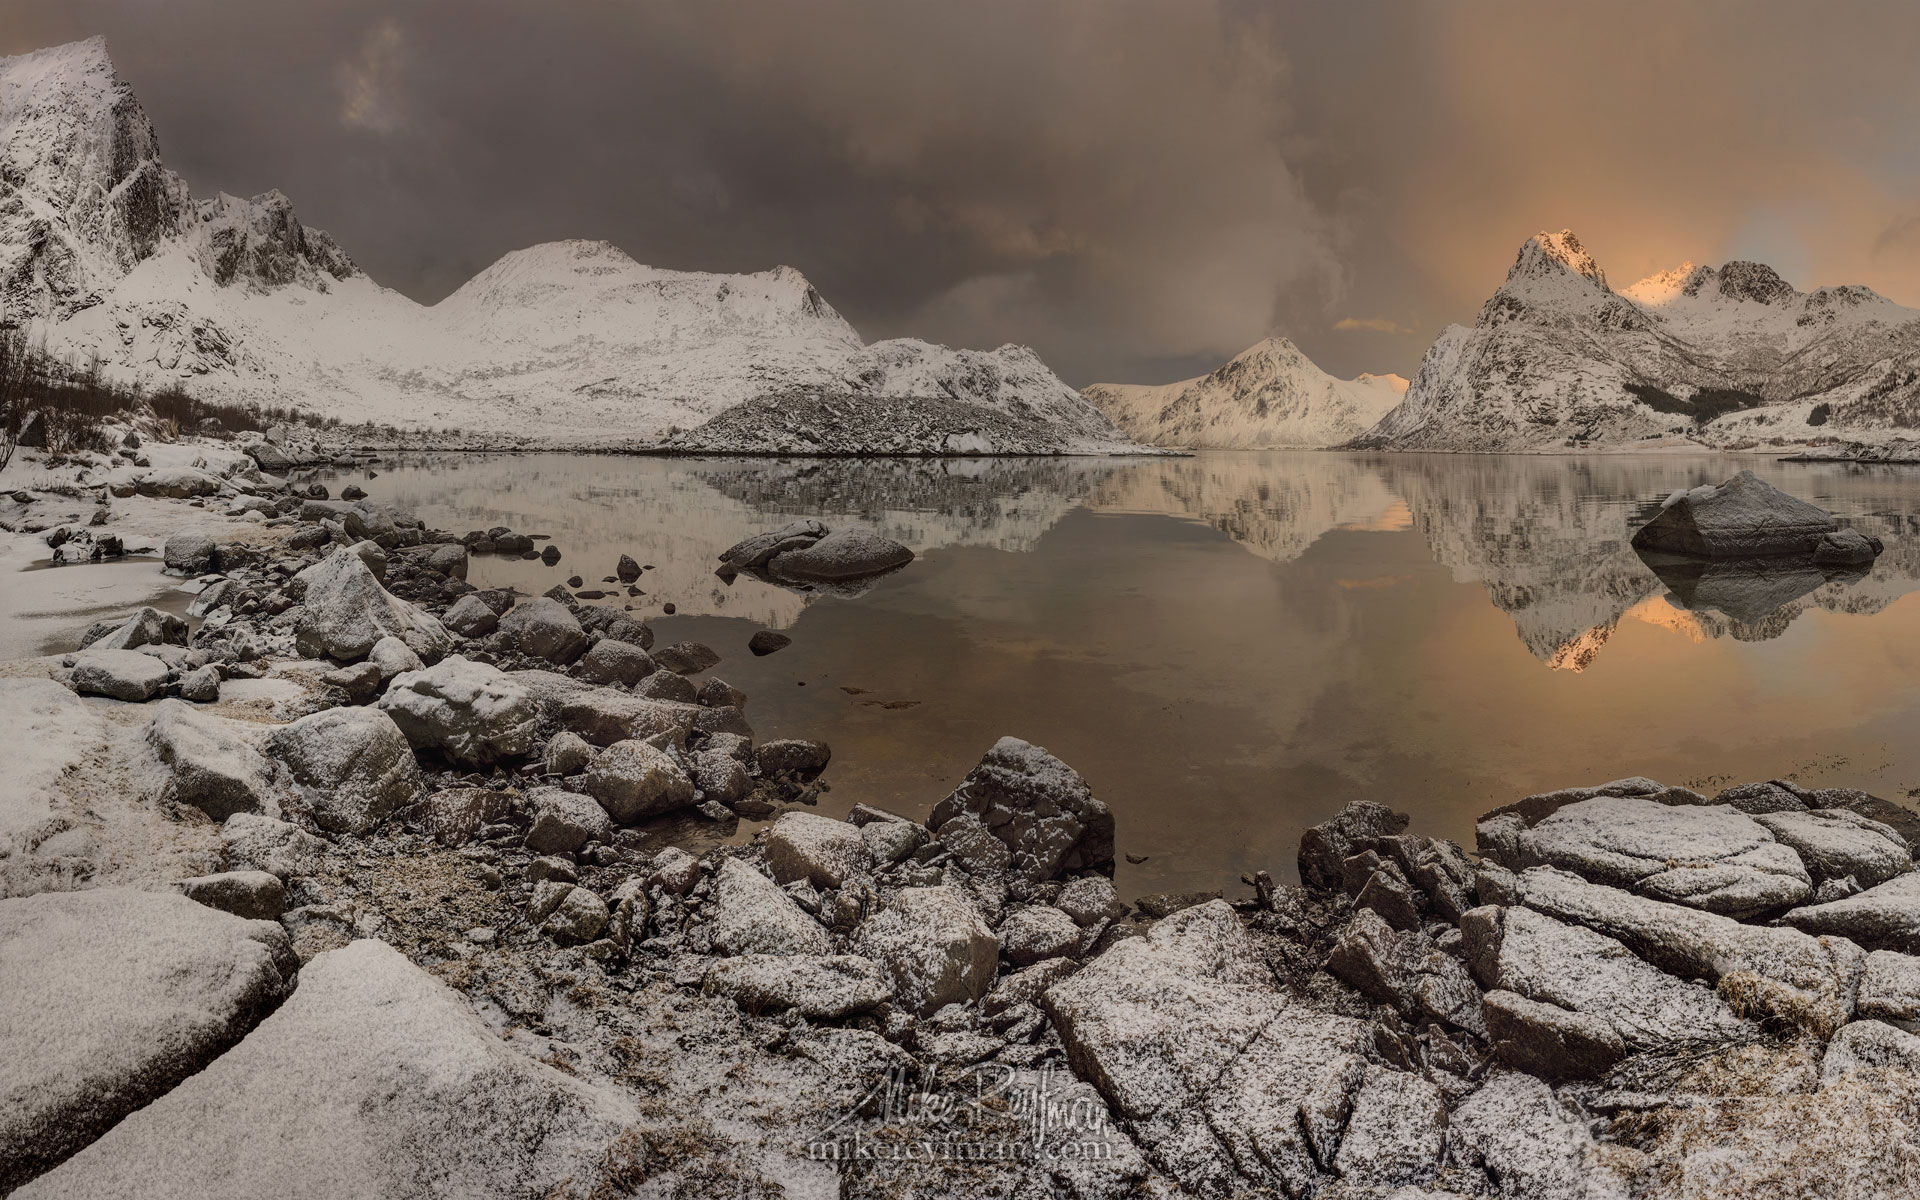 Sunset at Flakstad fjord, Flakstadøya, Lofoten archipelago, Norway LF-MRD1E0503-9 - Lofoten Archipelago in Winter, Arctic Norway - Mike Reyfman Photography